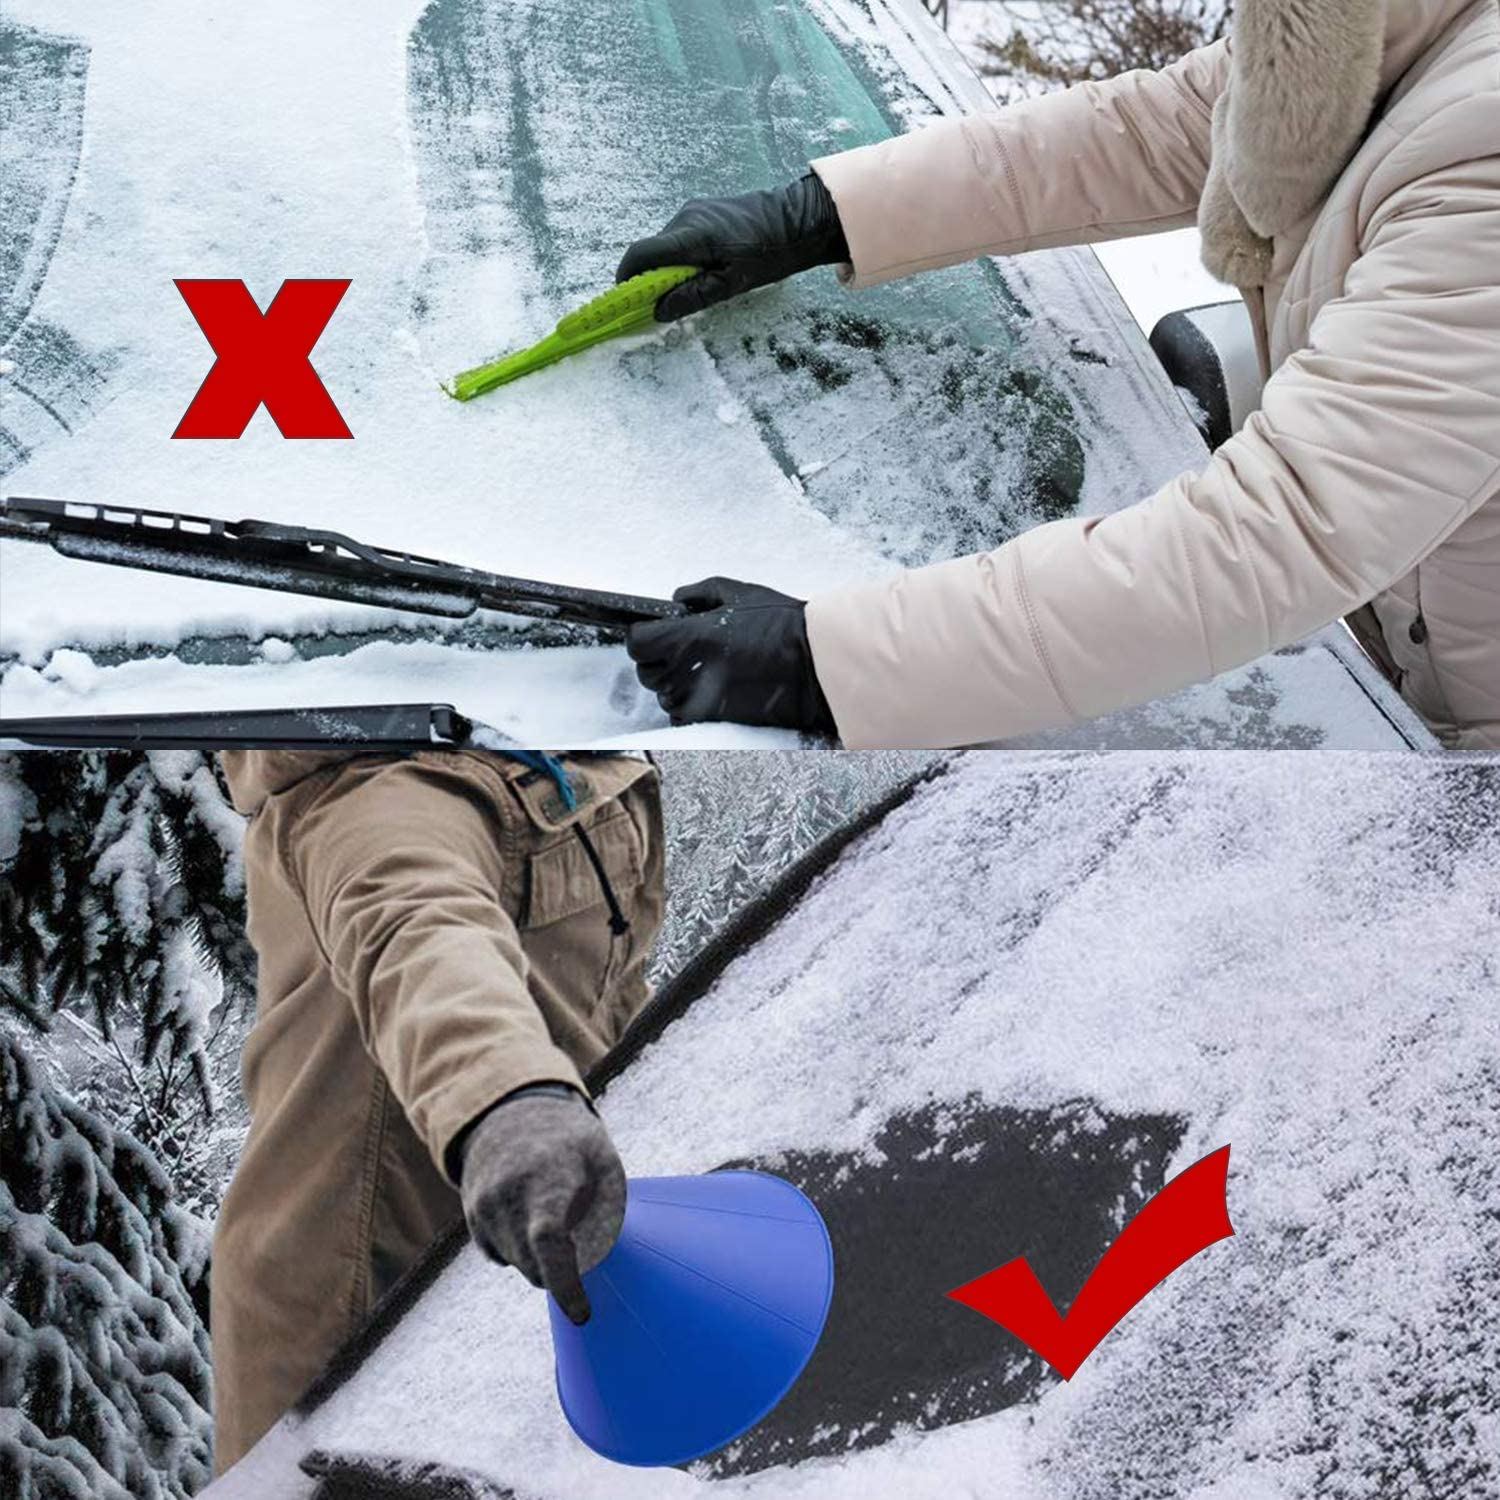 MOLECOLE Ice Scraper Magic Funnel Snow Removal Tool,Car Windshield Snow Removal Wiper,Ice Scraper Outdoor Tool,Round Deicing Scraping Tool Car Windshield Snow Scraper 4Pack